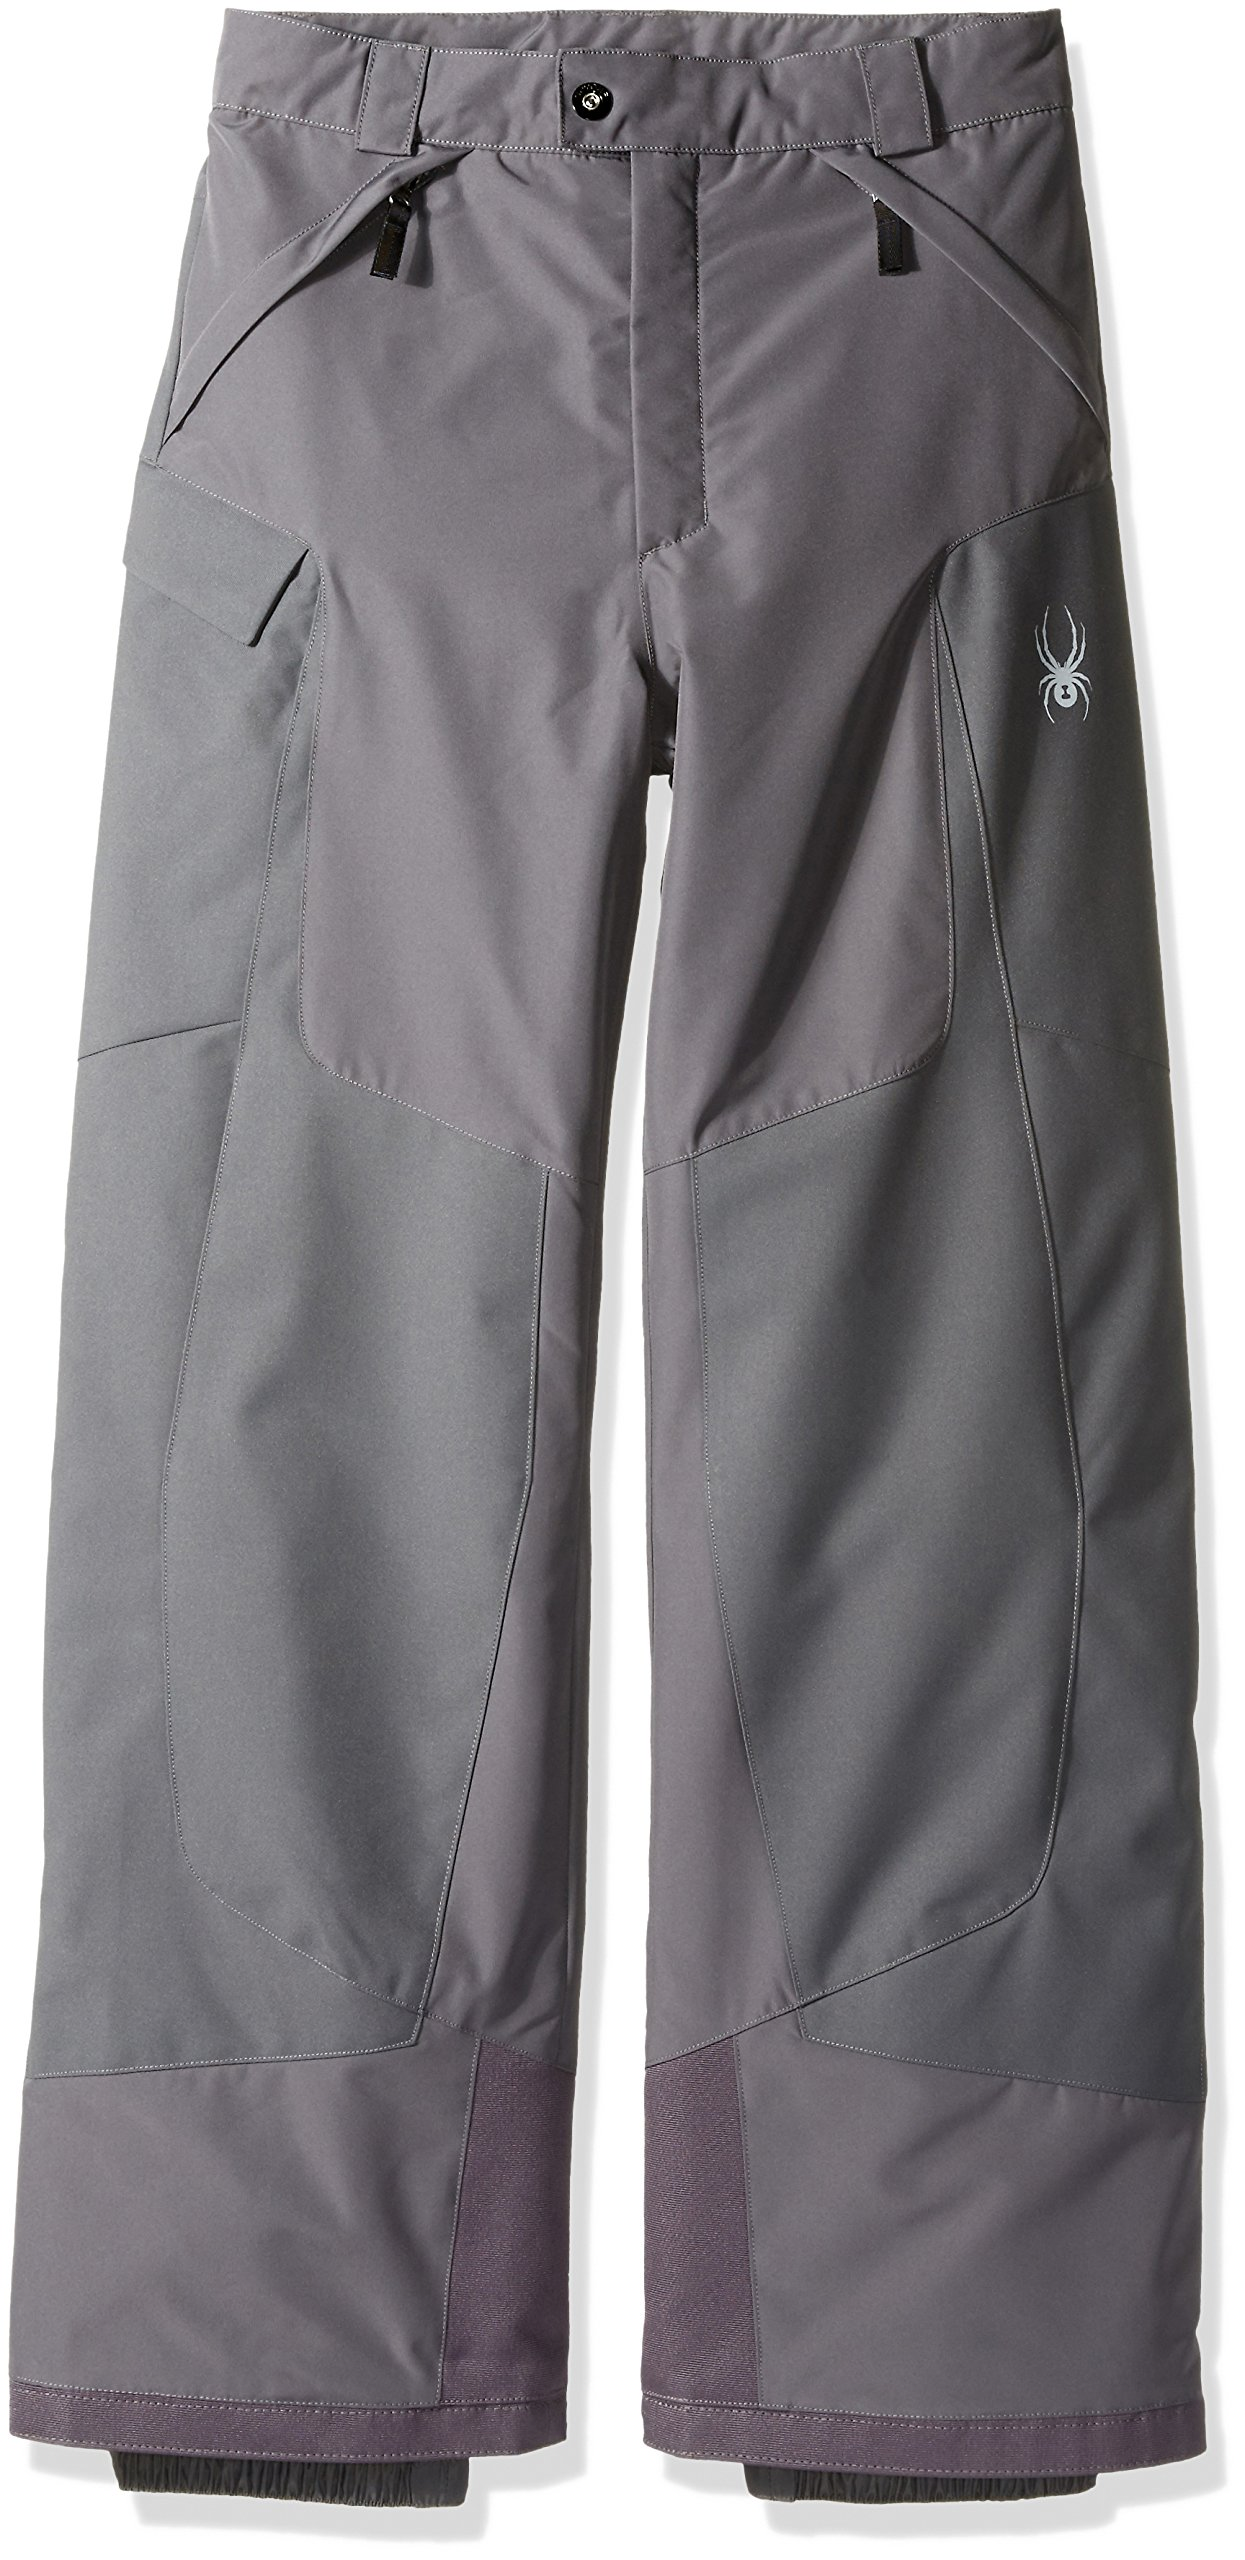 Spyder Boys Action Pants, Size 14, Polar